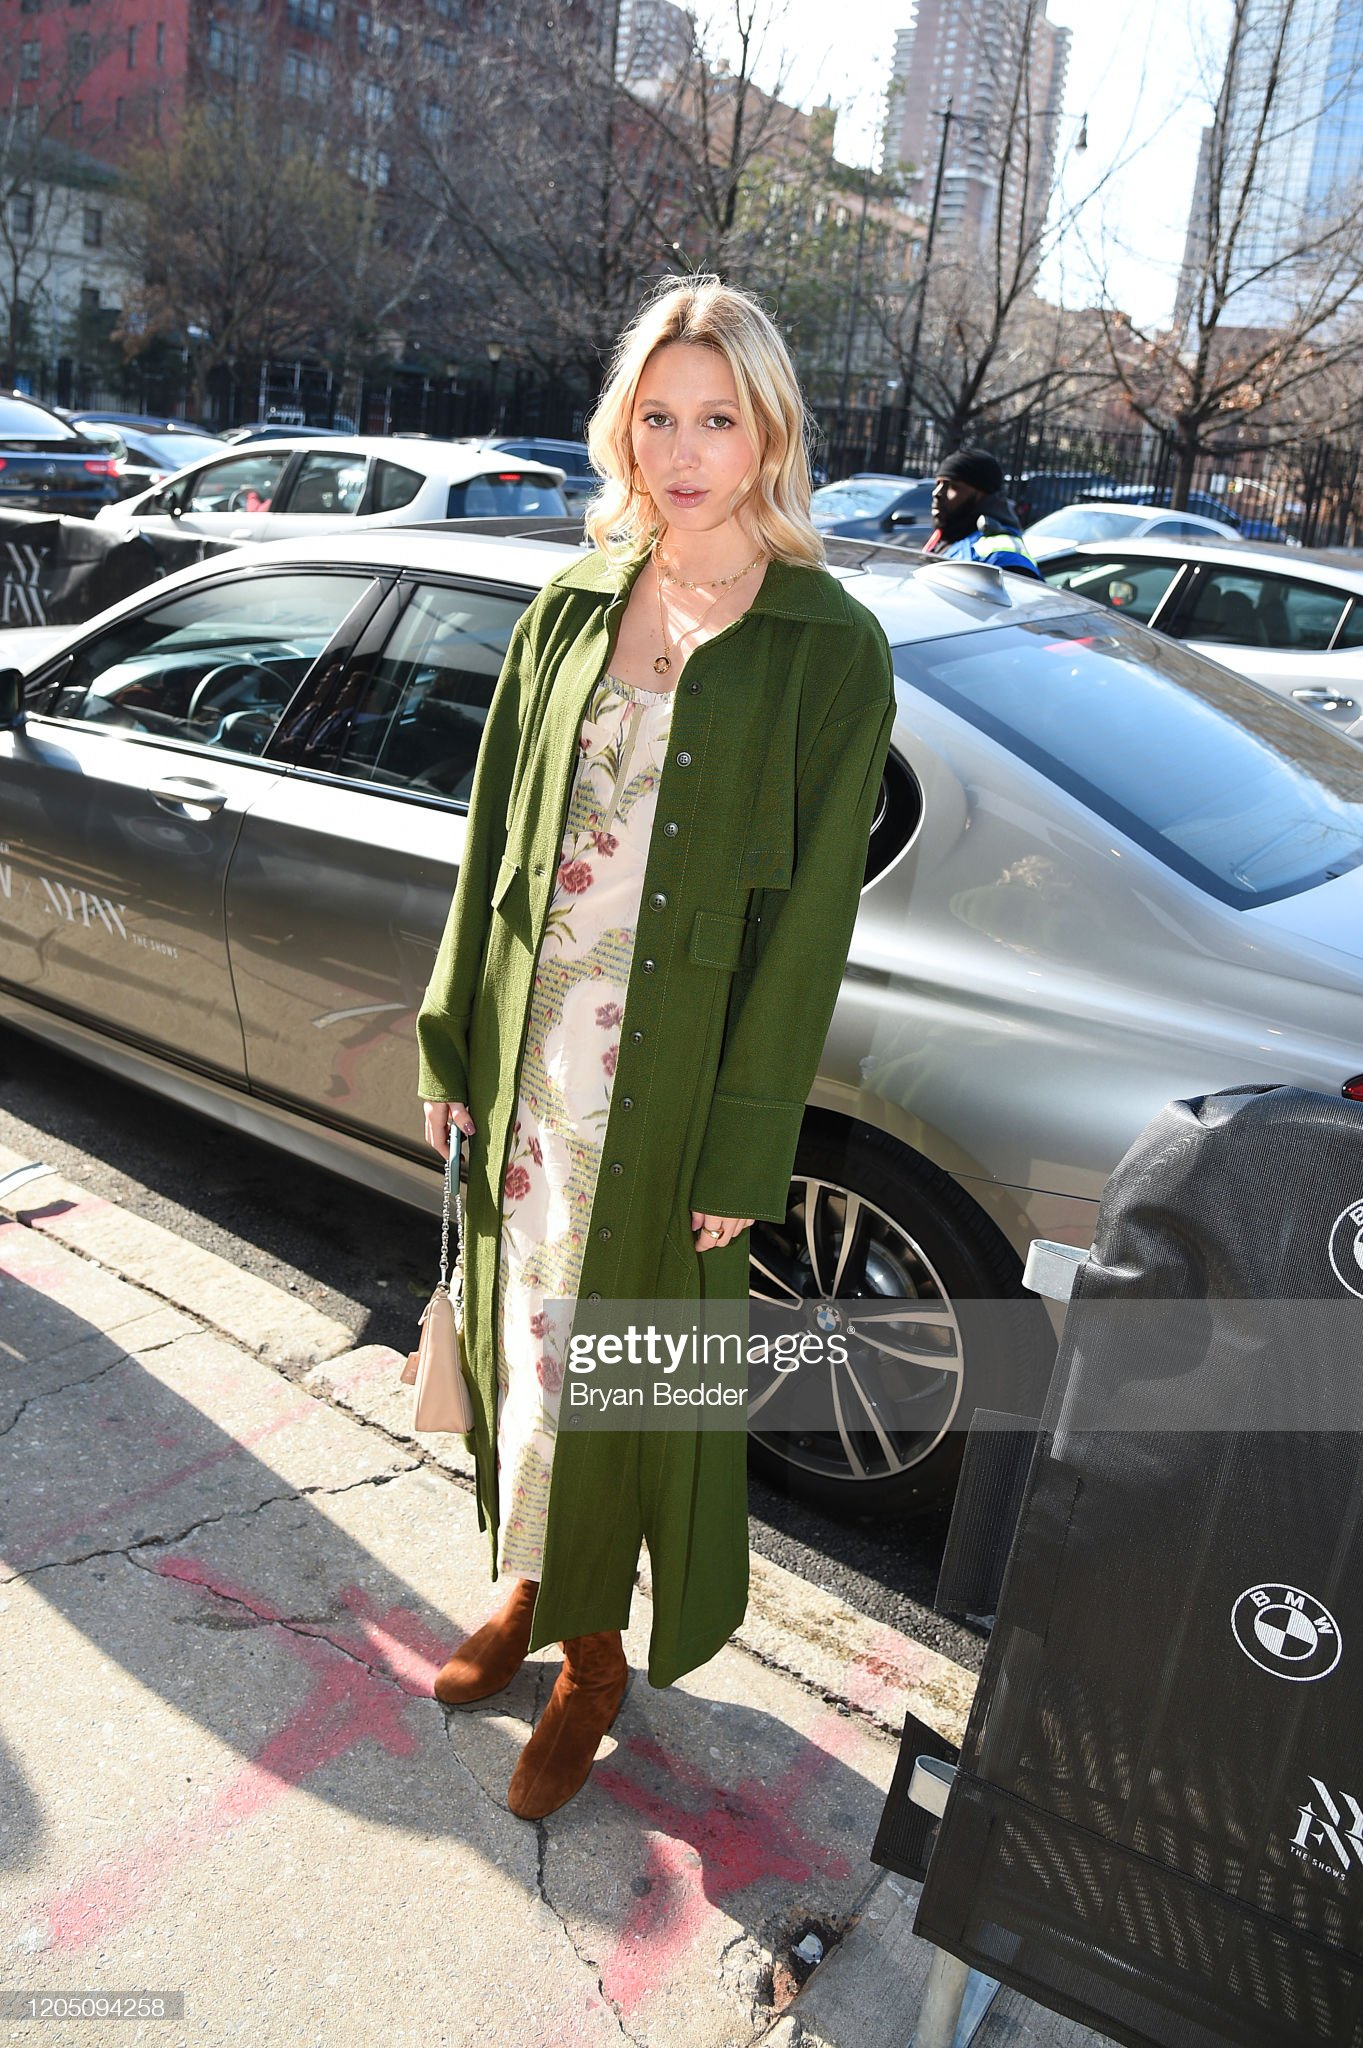 https://media.gettyimages.com/photos/princess-mariaolympia-arrives-to-nyfw-the-shows-in-a-bmw-750i-xdrive-picture-id1205094258?s=2048x2048